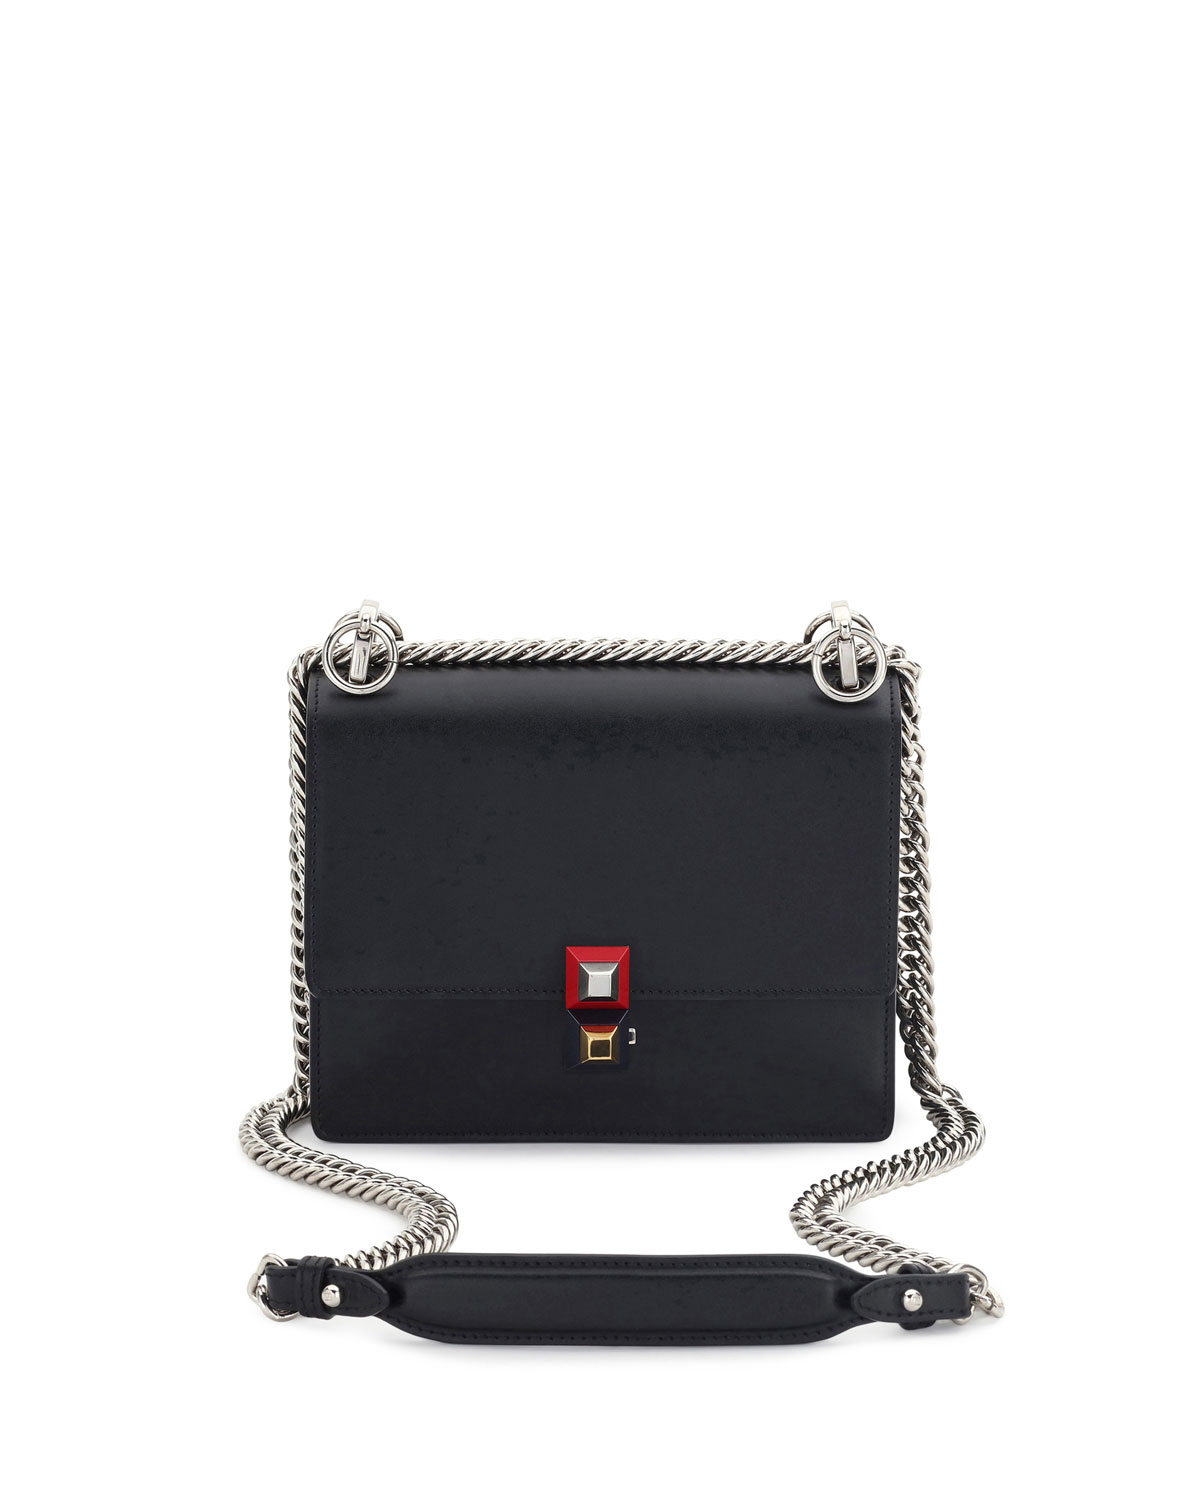 2d8d6cb6859f Fendi Kan I Mini Leather Chain Shoulder Bag